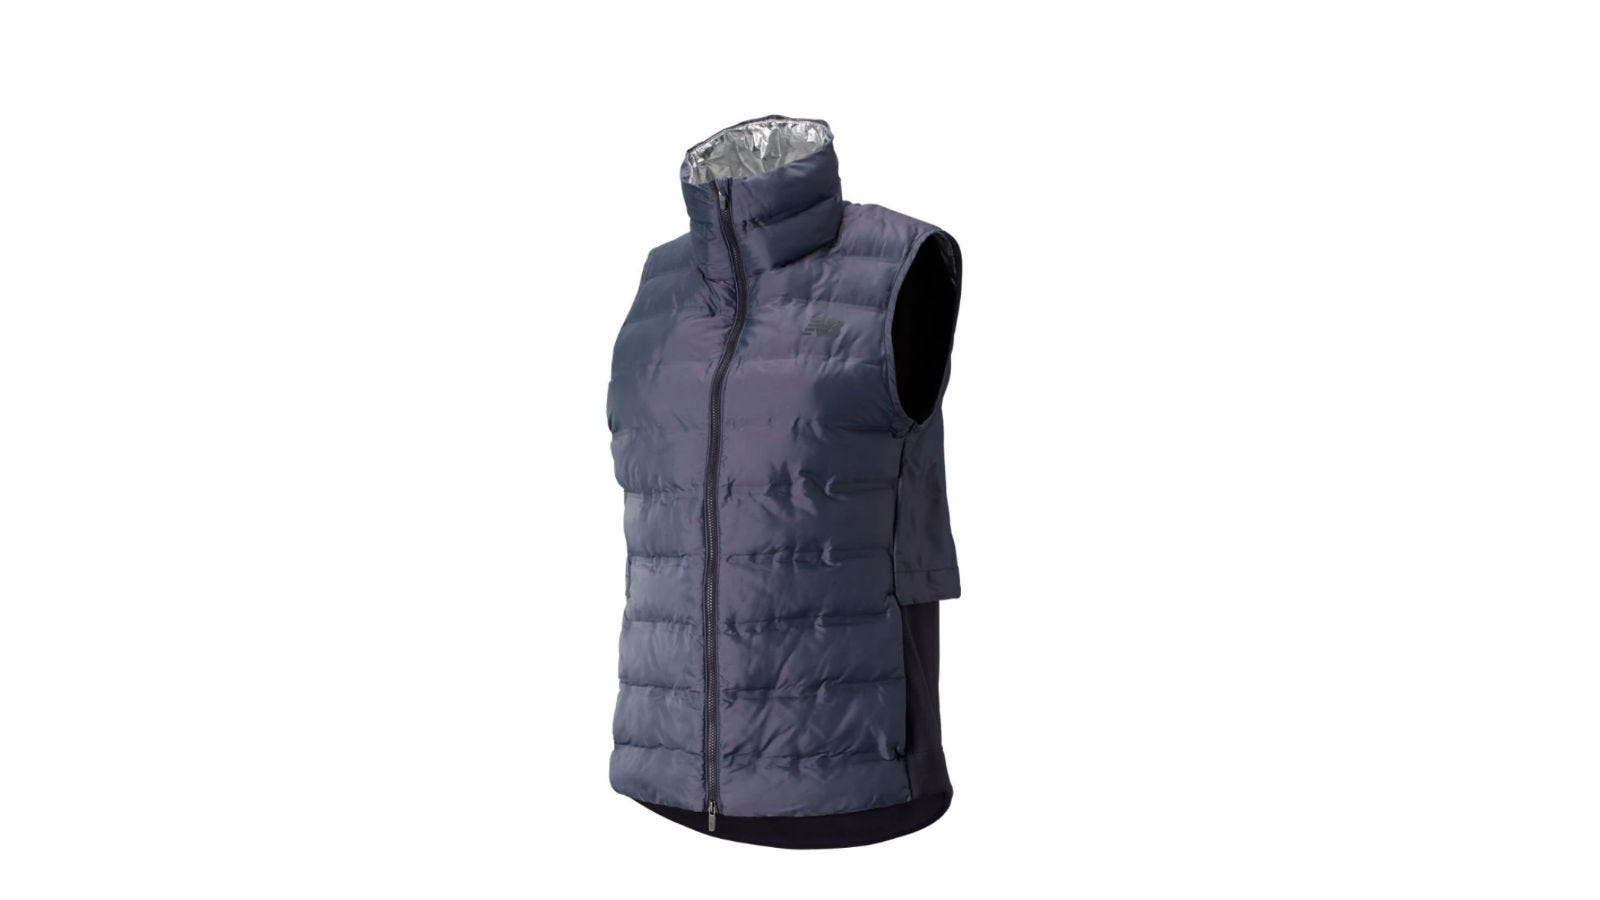 New Balance Radiant Heat Vest